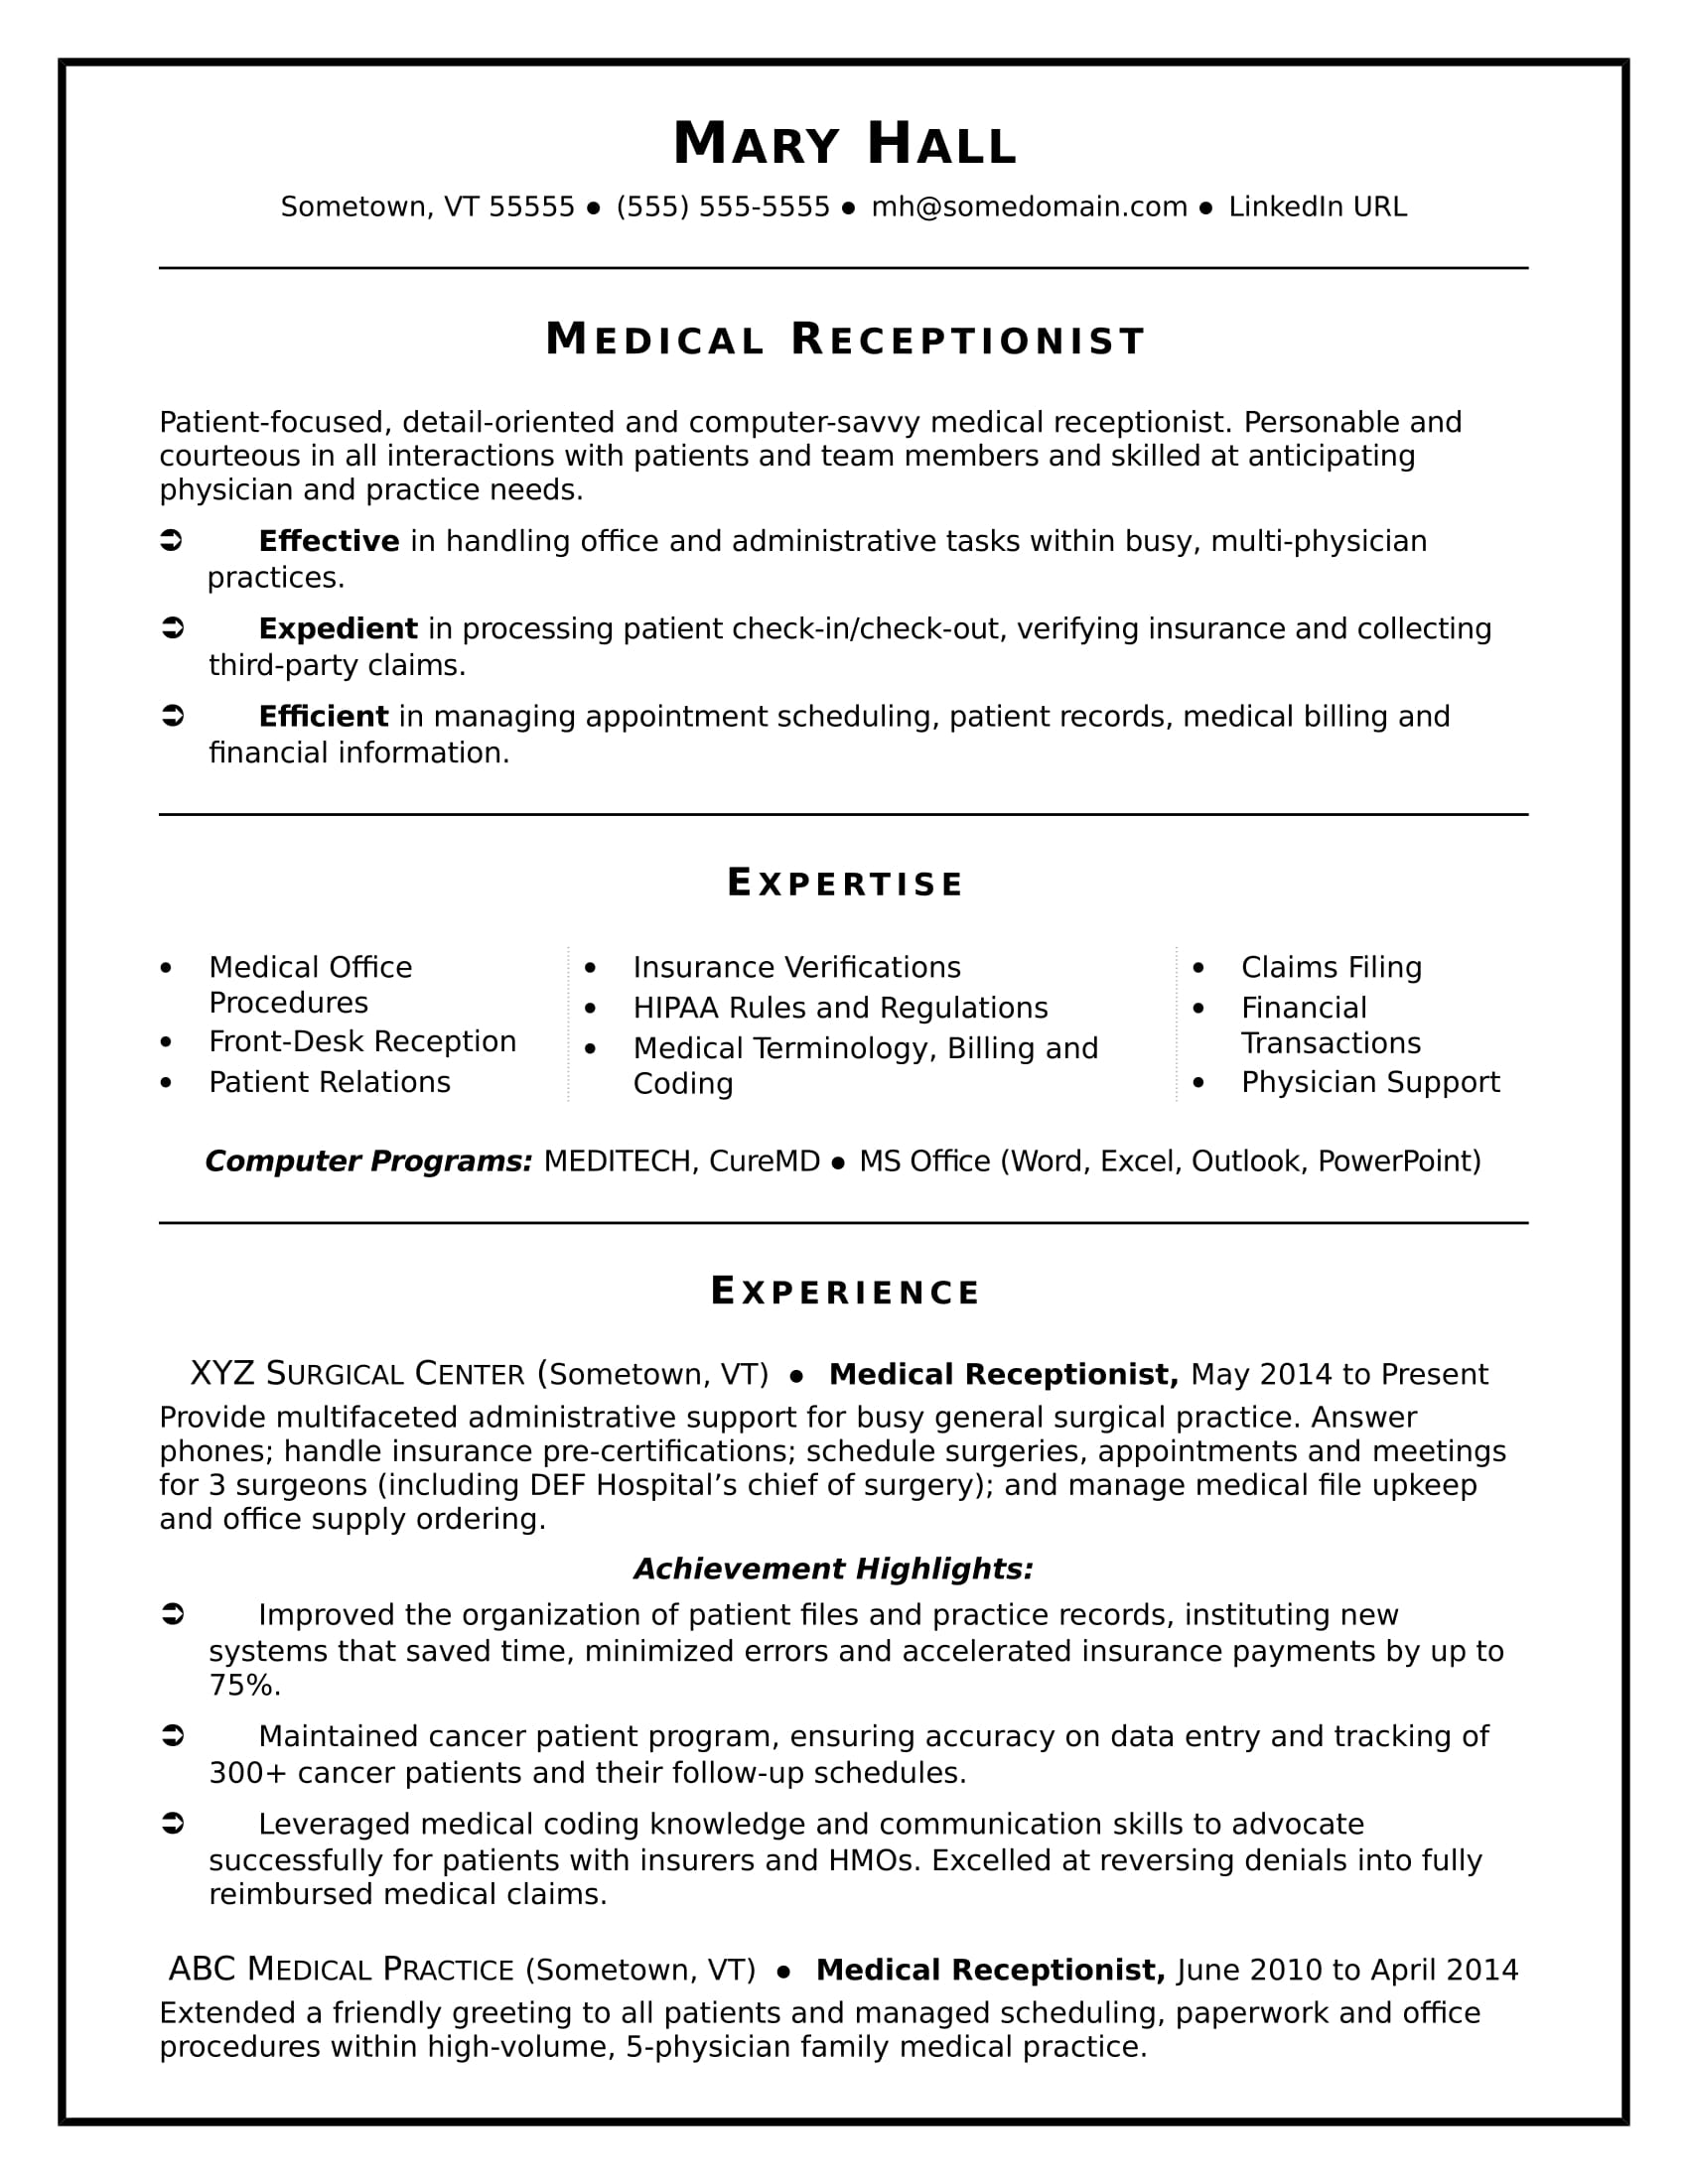 Medical Receptionist Resume Sample  Medical Front Desk Resume